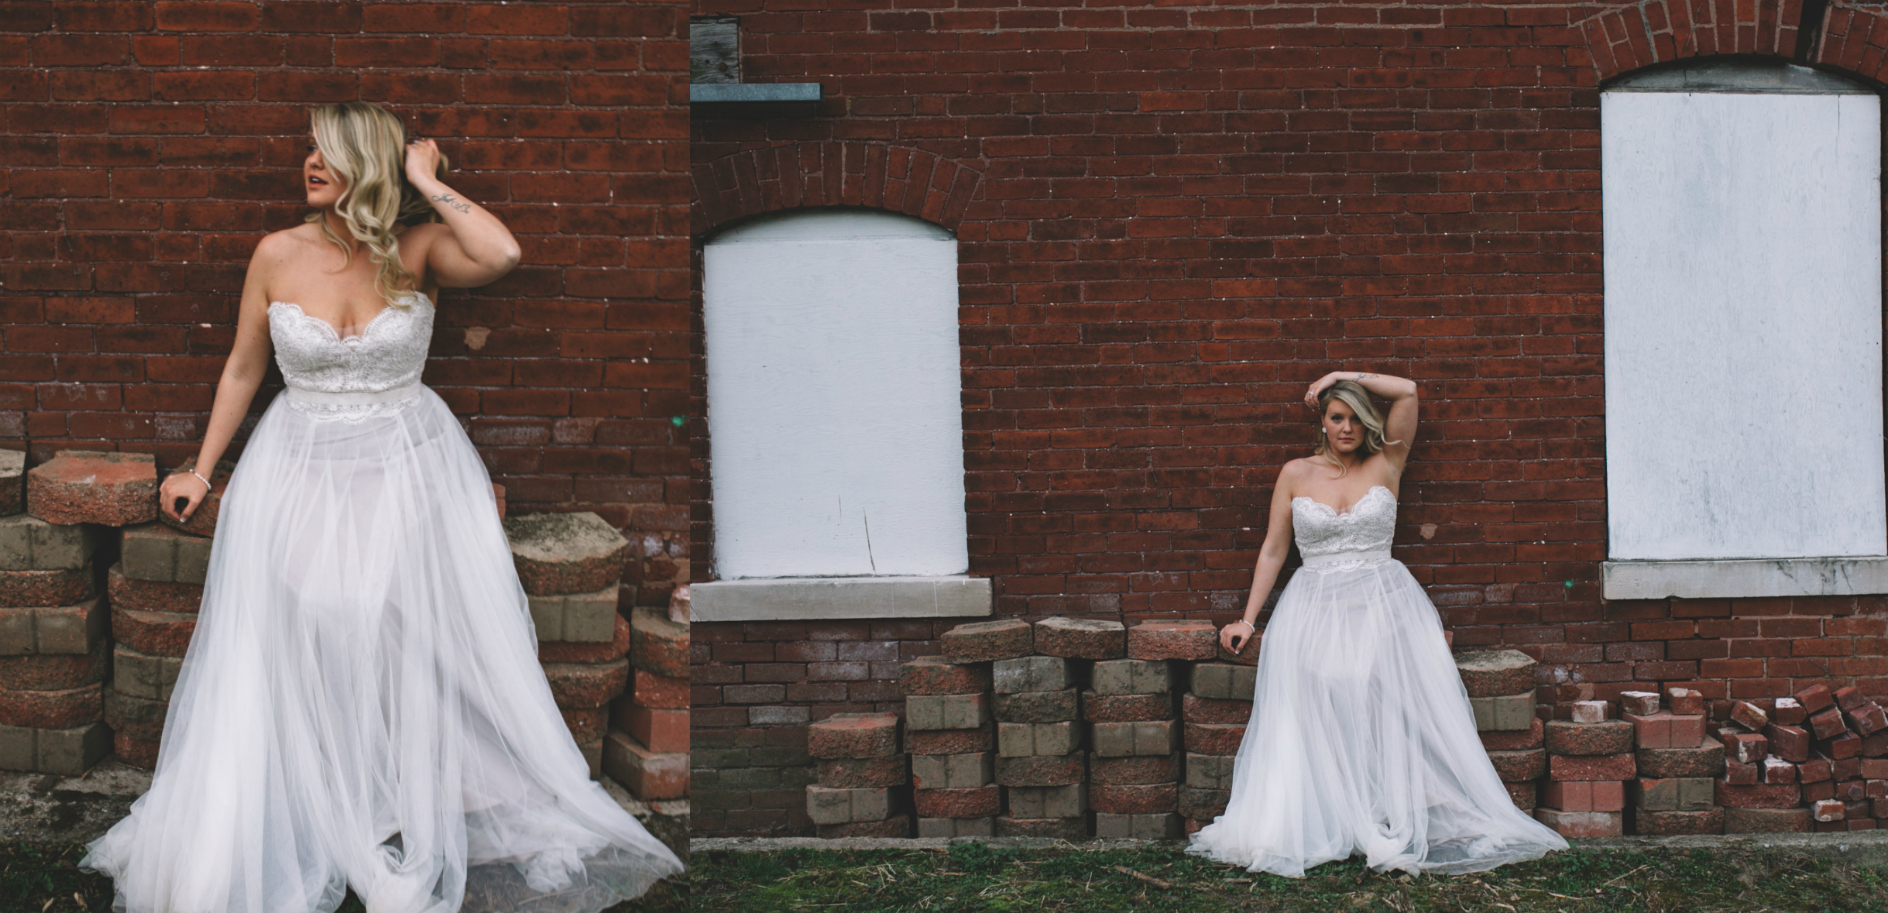 Bride Freedom Barn Hope Center .jpg